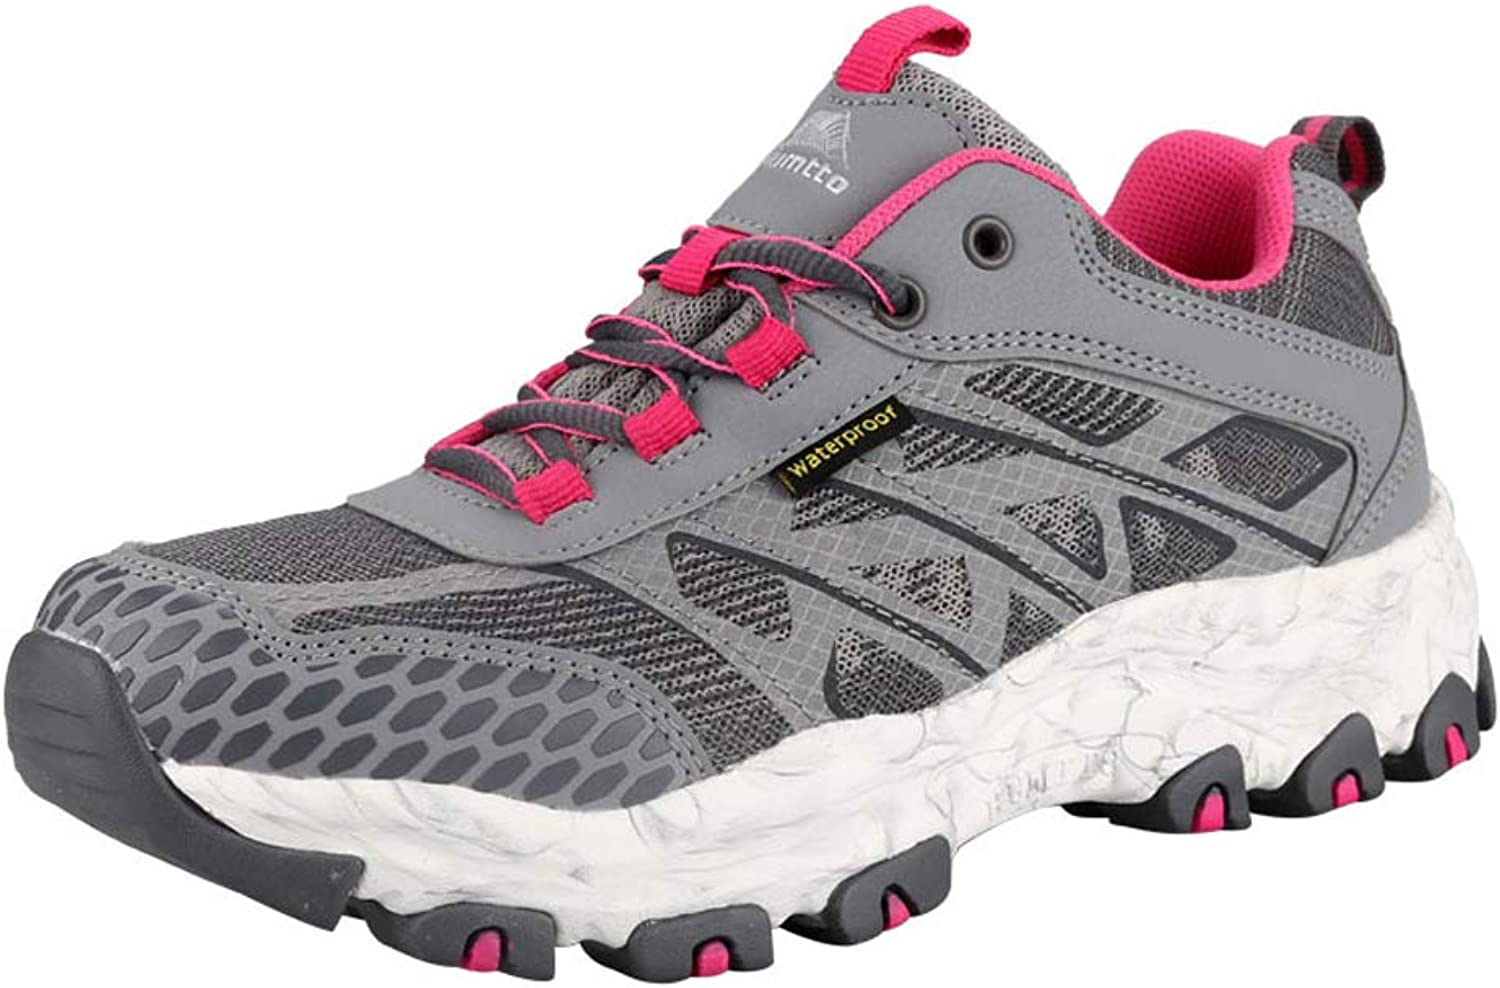 SELCNG Hiking shoes, Non-Slip Sports, Outdoor shoes, Breathable, Lightweight Mountain Climbing shoes